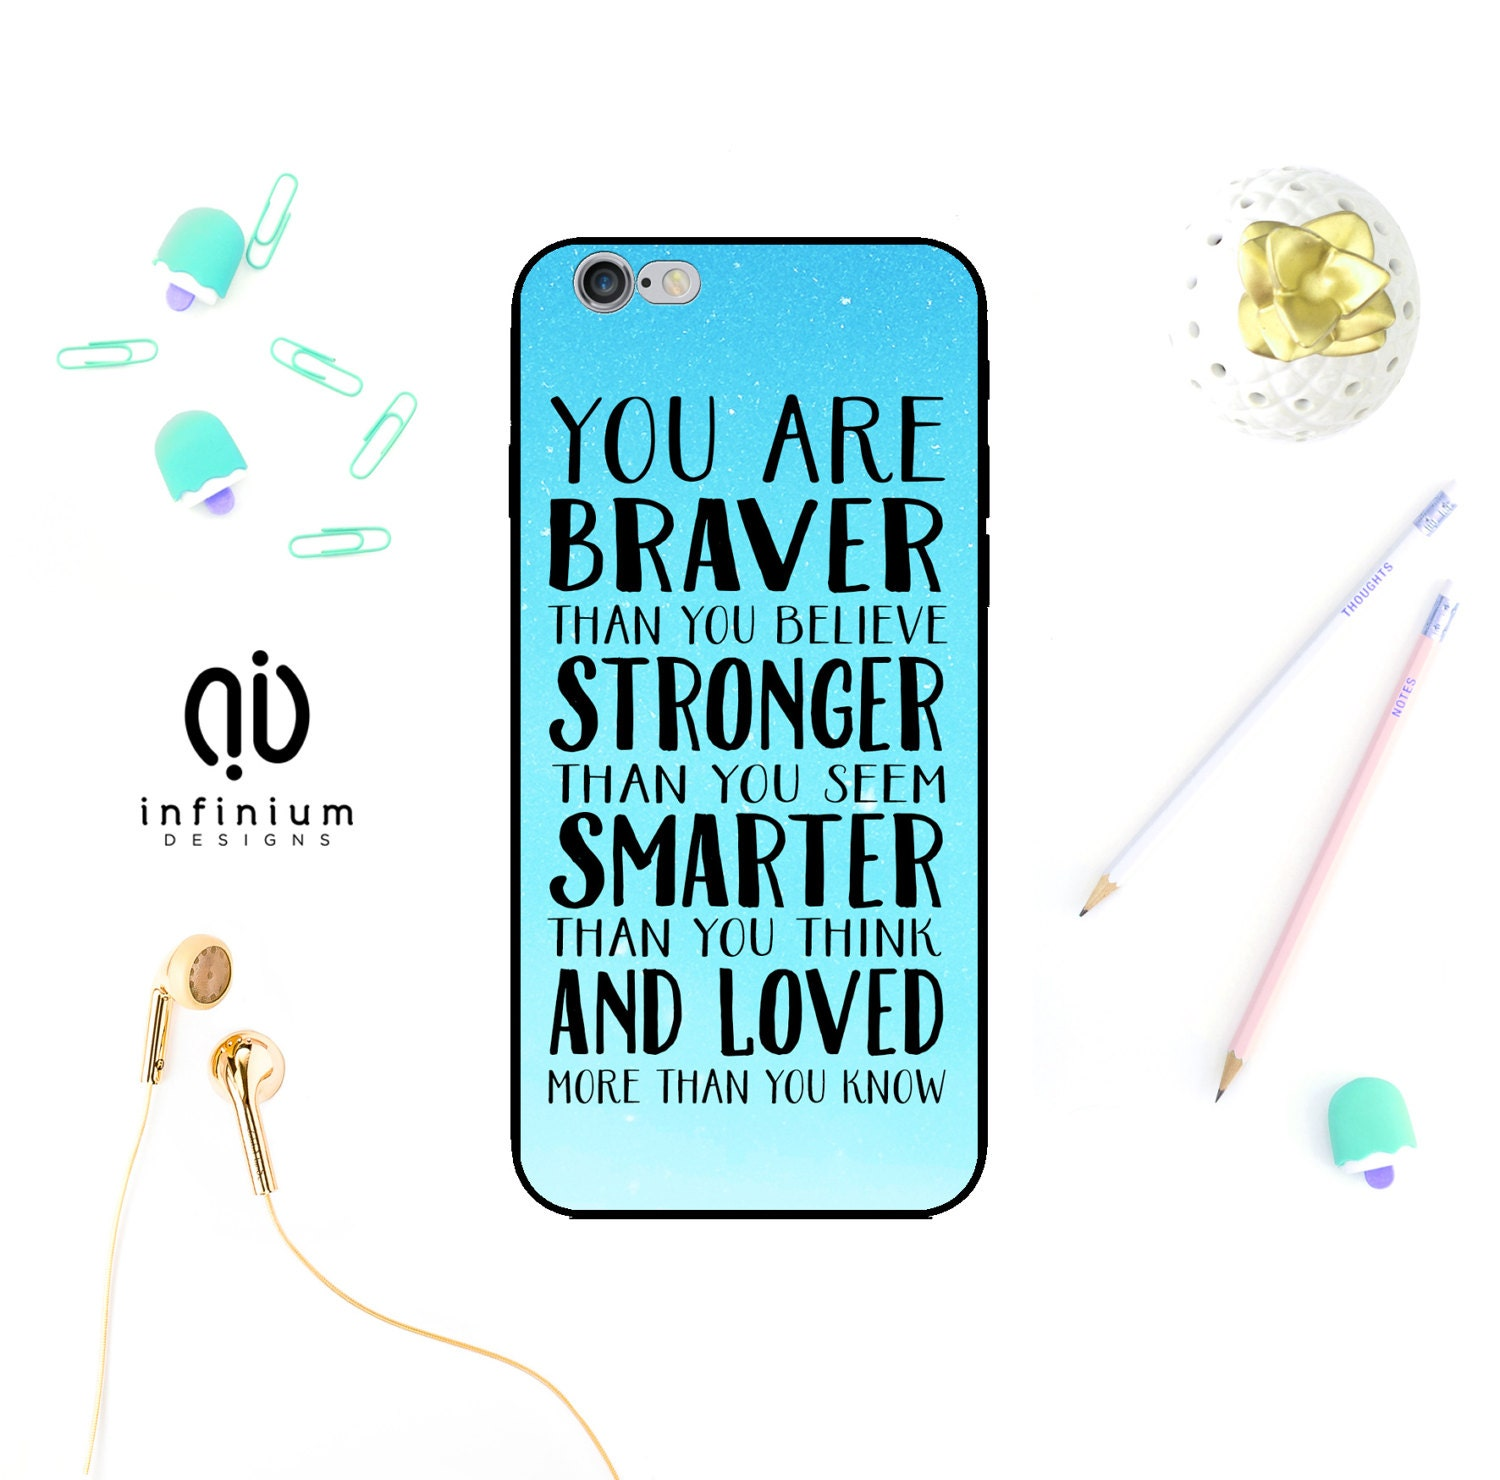 You Are Braver Case For iPhone 7 Samsung S8 S8 Edge S7 A5 Galaxy A3 J3 J5 Core Prime 7 Plus iPhone 6S SE 5S  iPod Touch 6